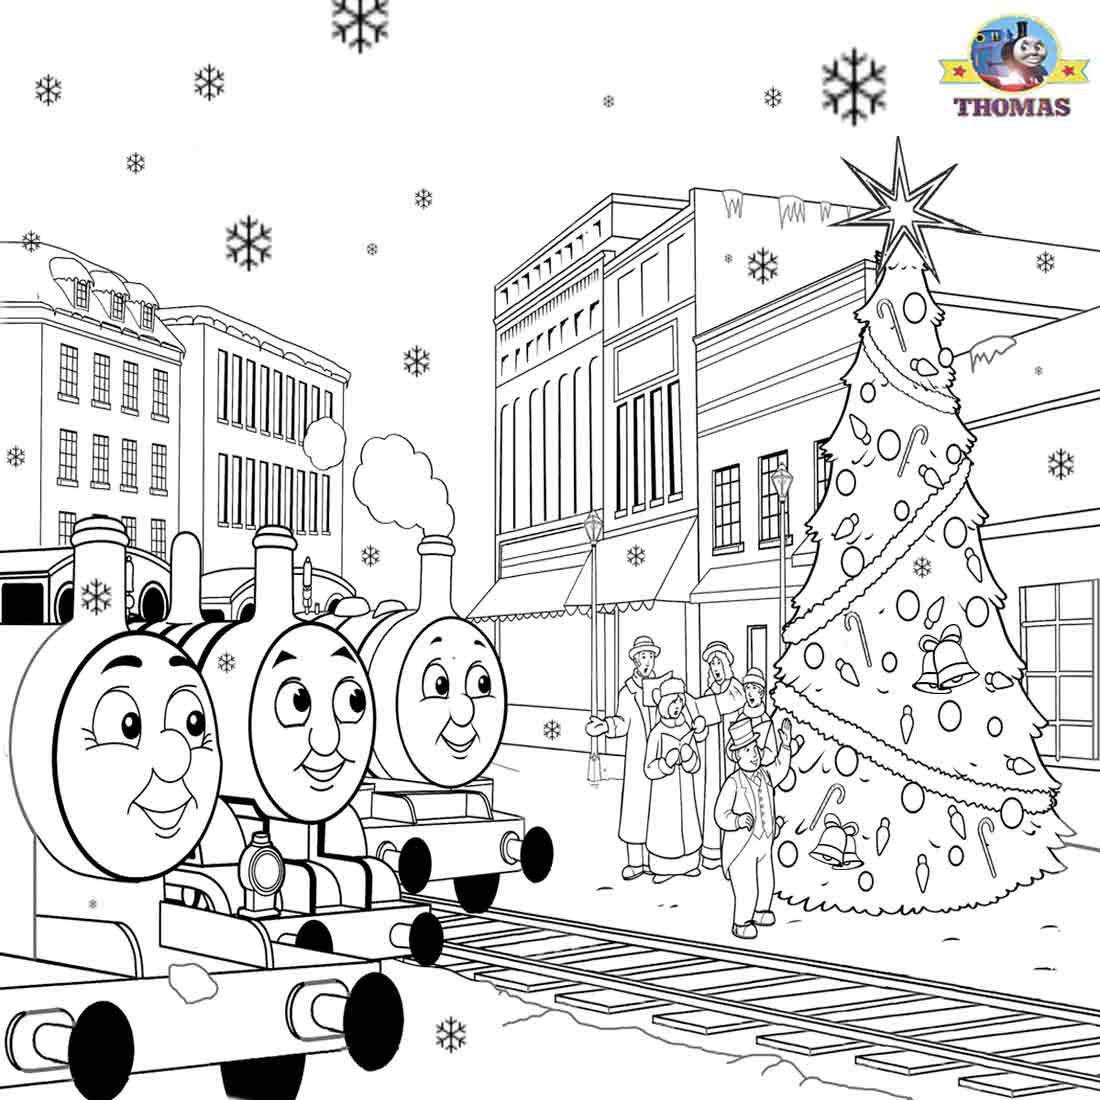 james percy the train thomas christmas coloring sheets for children printable pictures xmas clip art